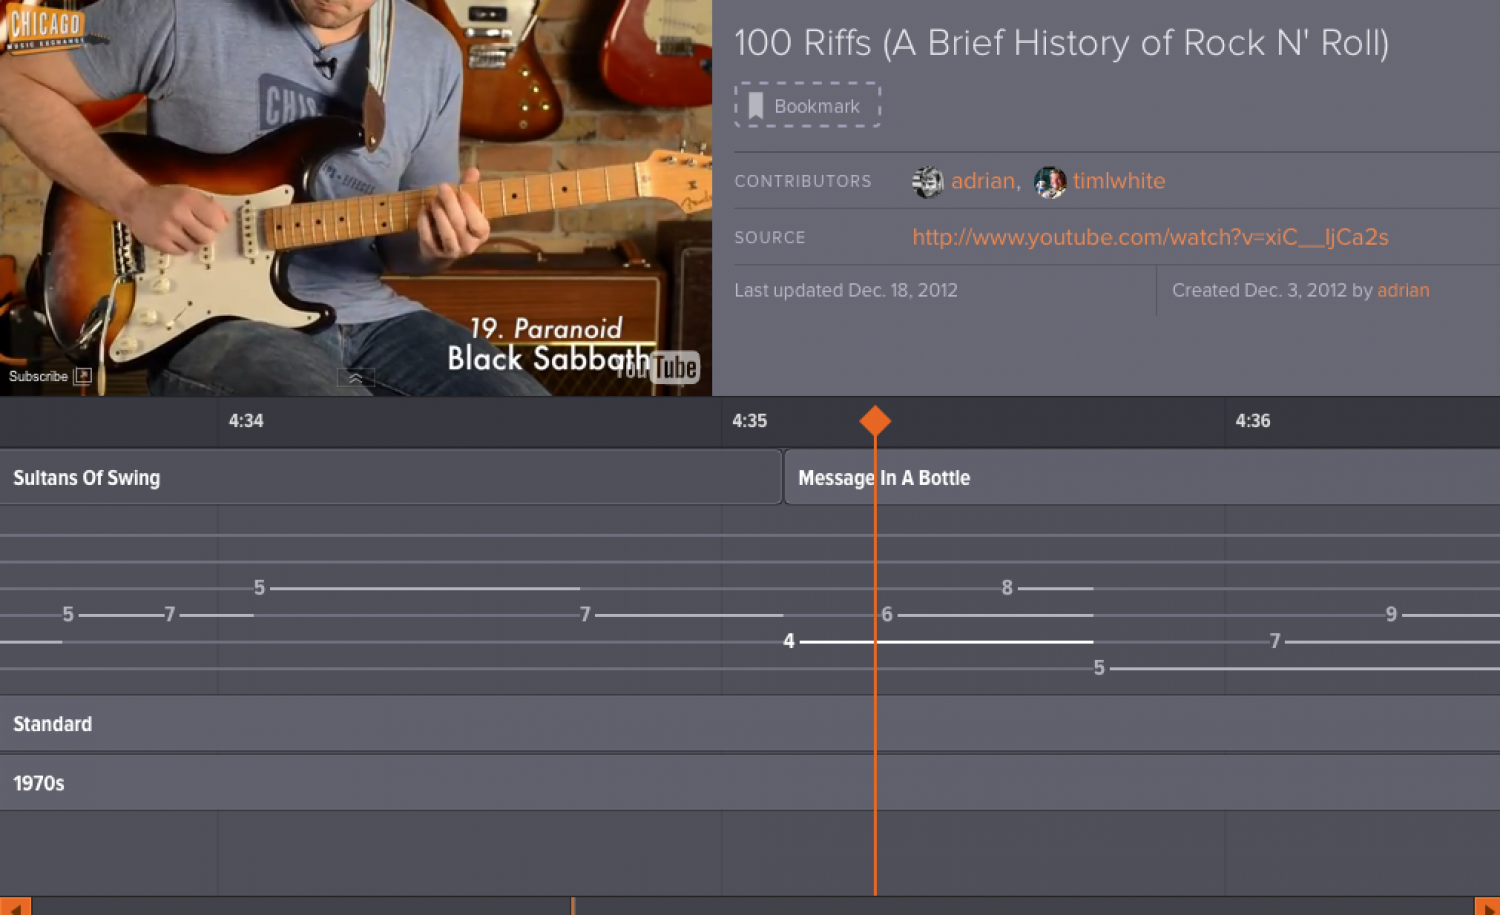 100 Riffs (A Brief History of Rock N' Roll) Infographic